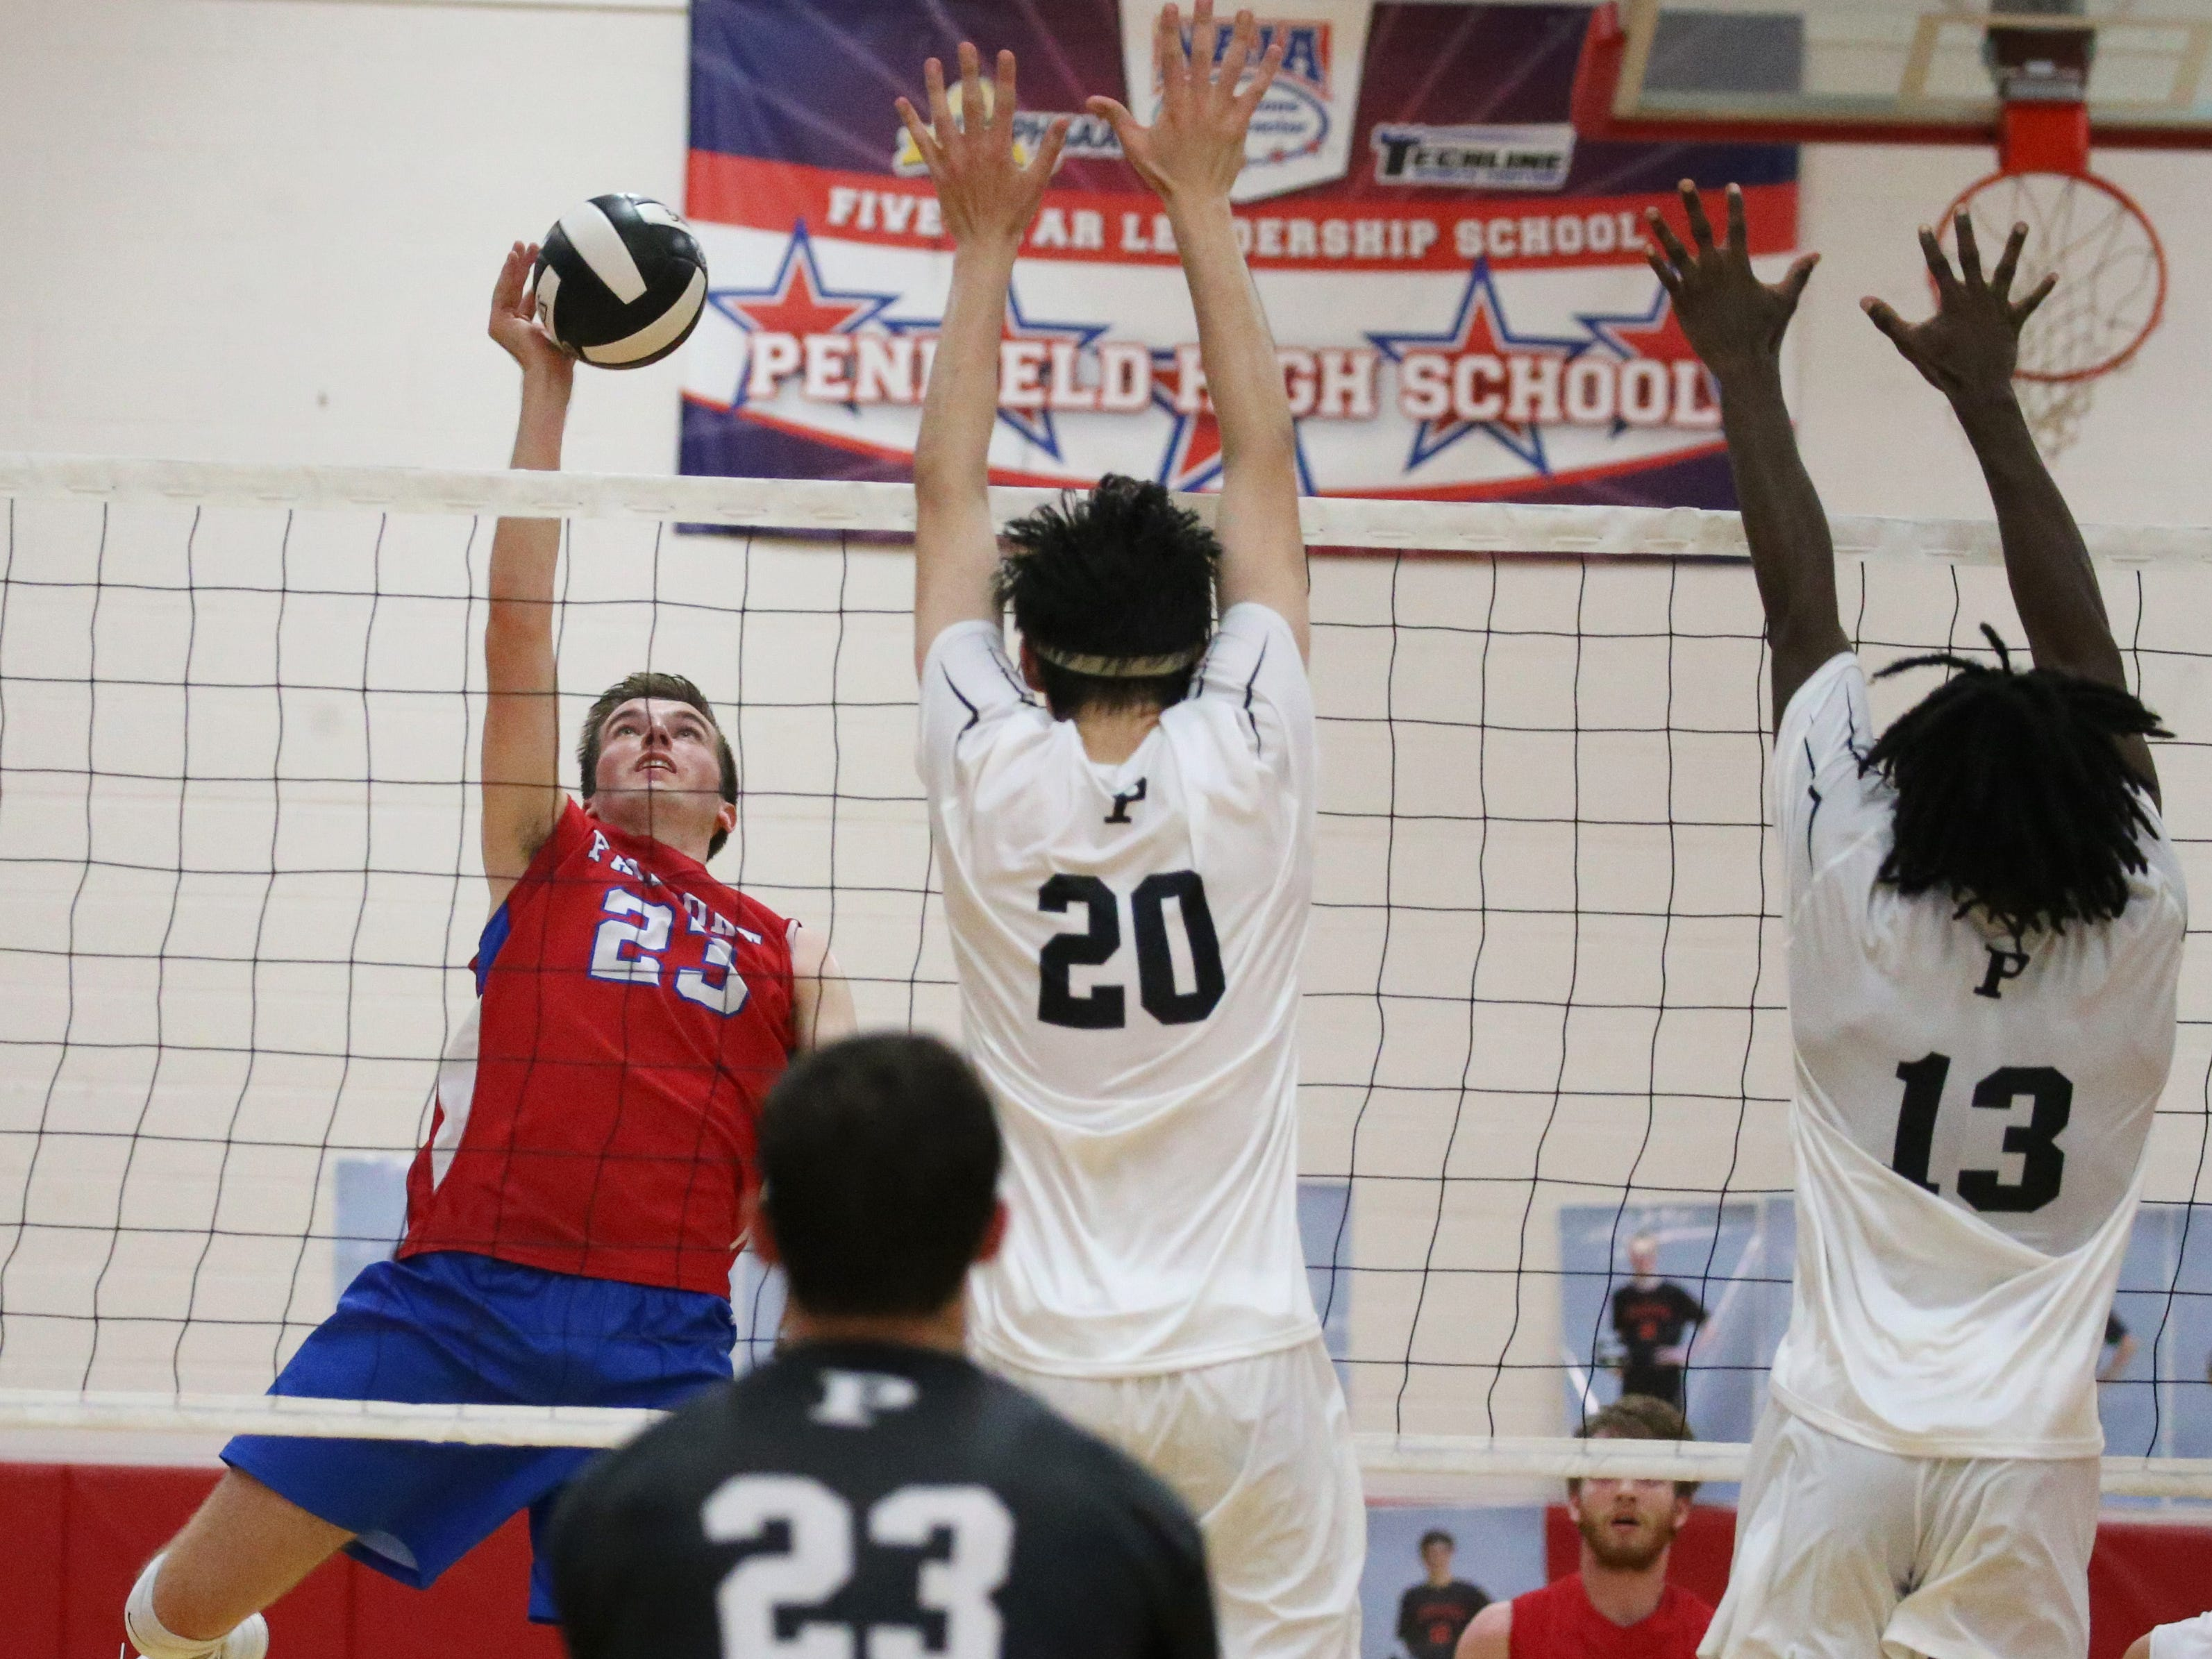 Fairport's Ryan Parker, left, sends in a spike past the defense of Penfield's Josh Coan, center, and Christian Allen, right.